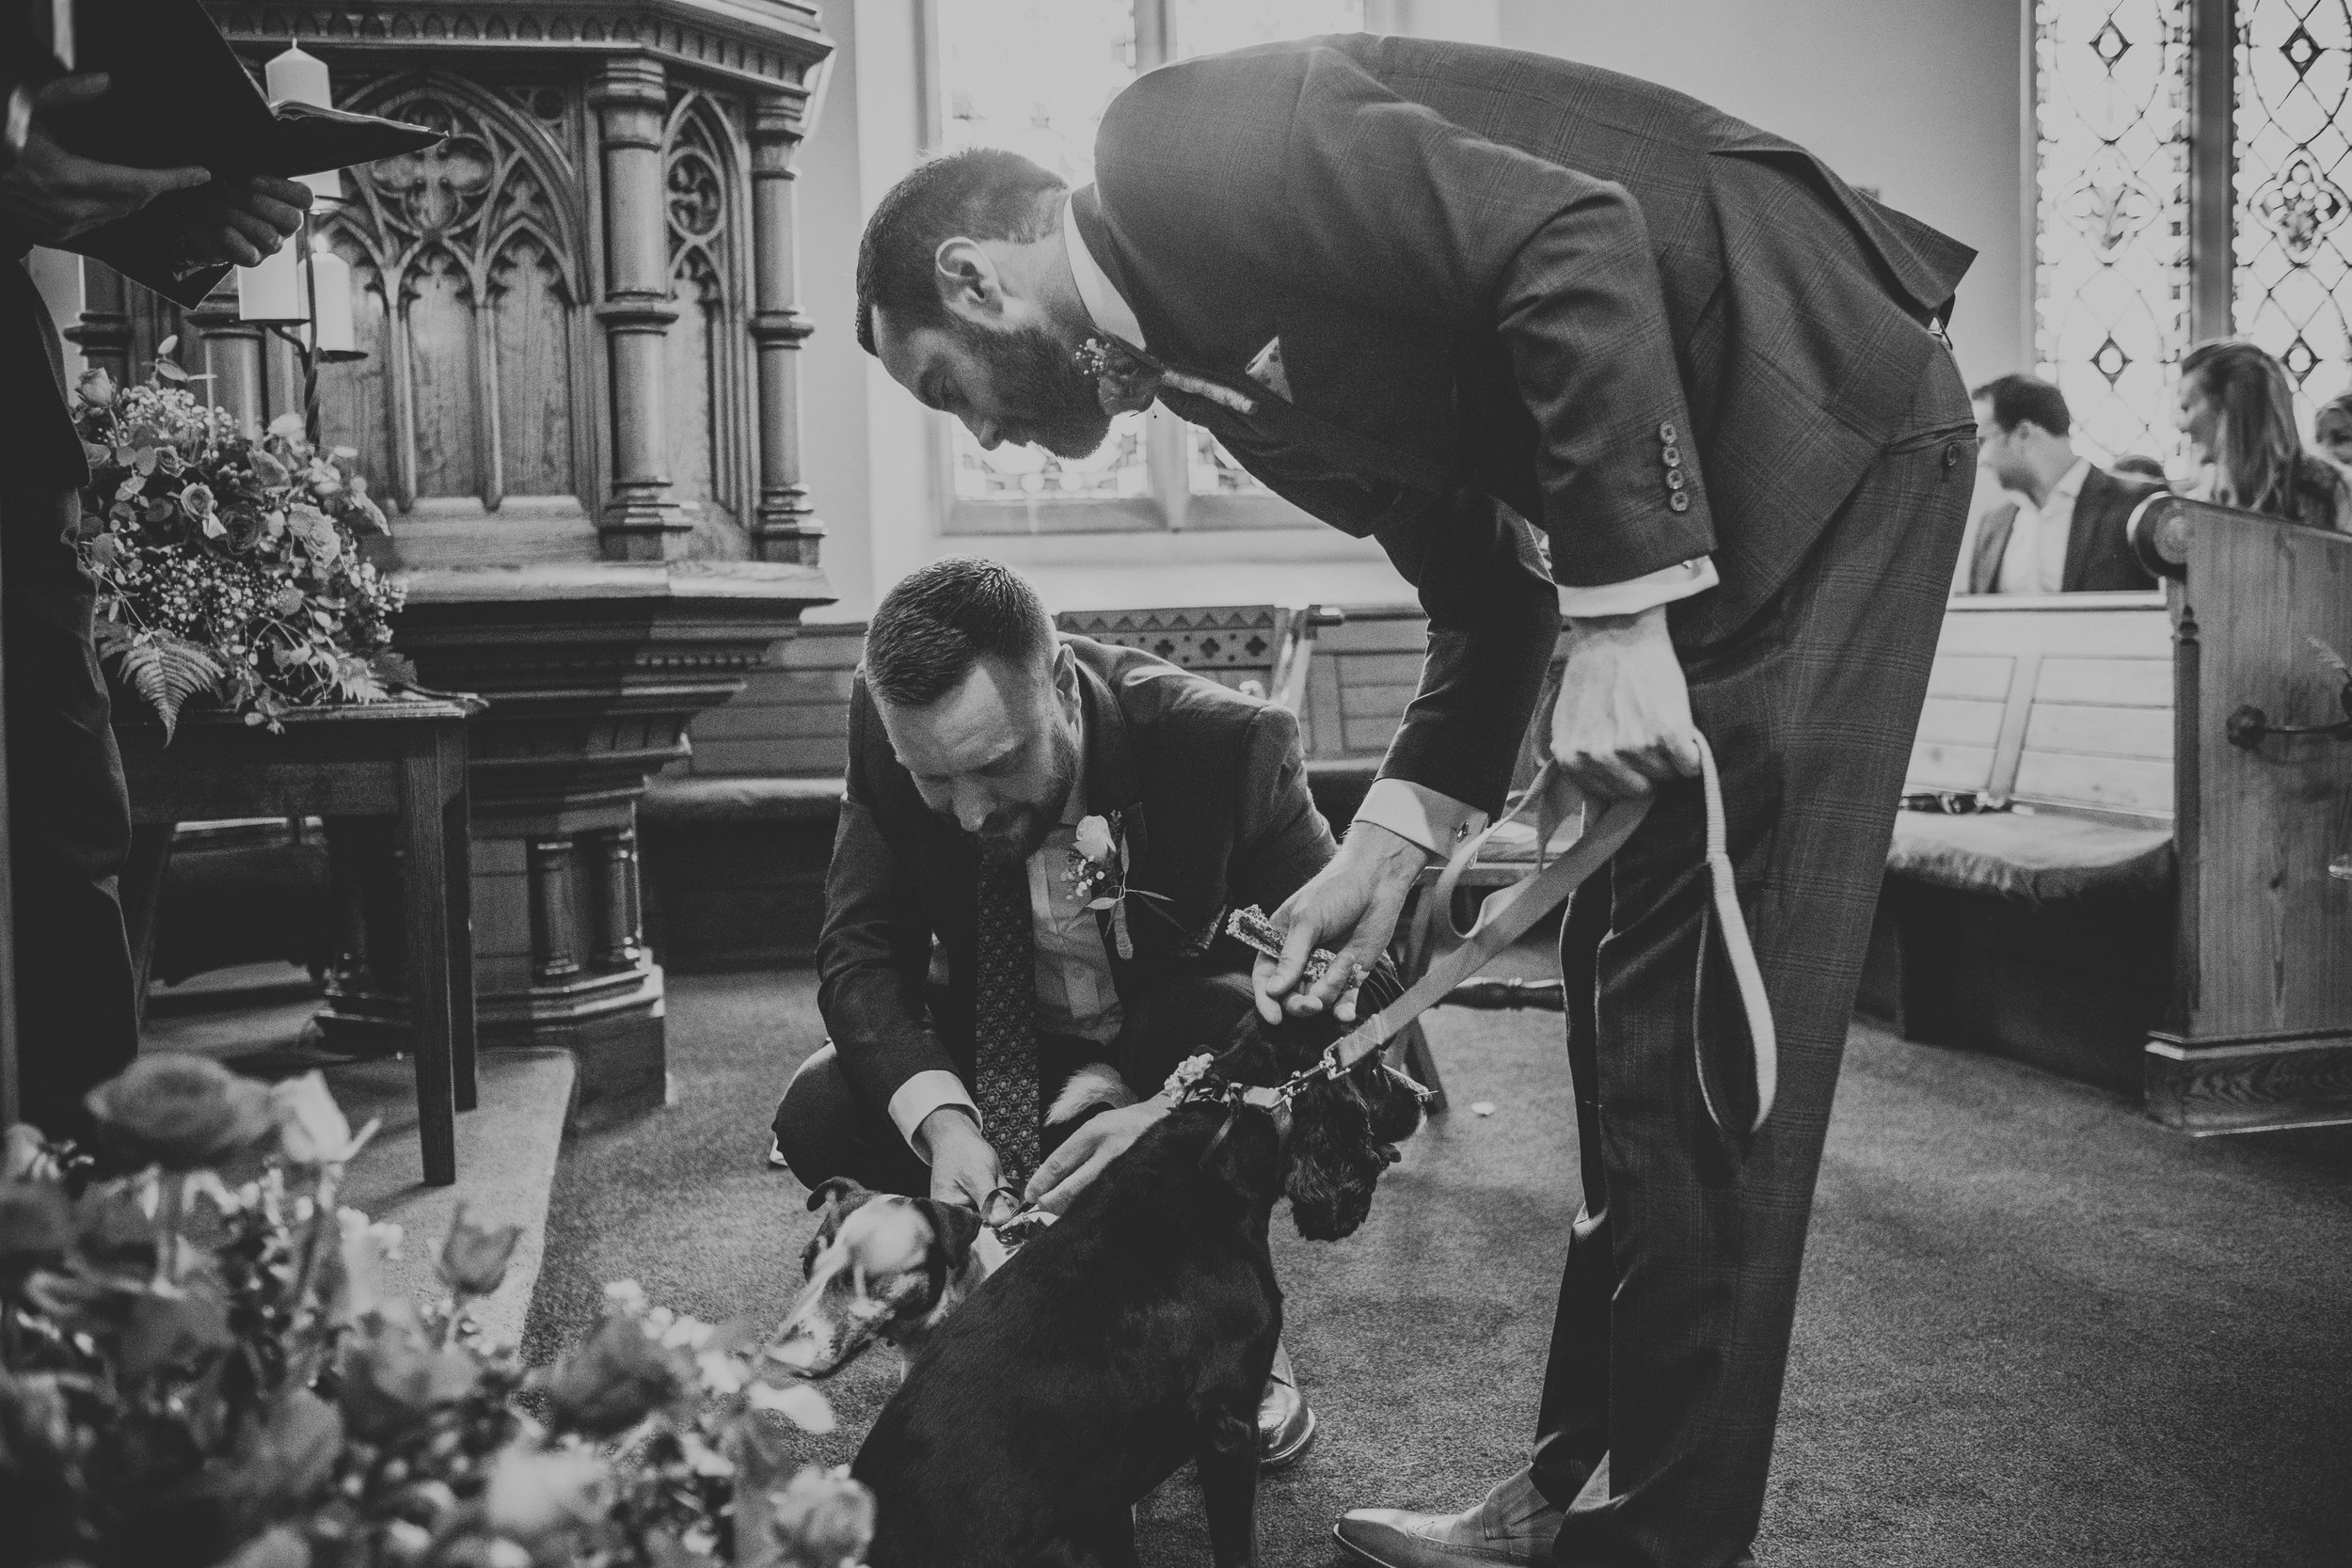 James and James Same sex wedding photography held in mobberley victory hall manchester north west england wedding photographer (29 of 100).jpg